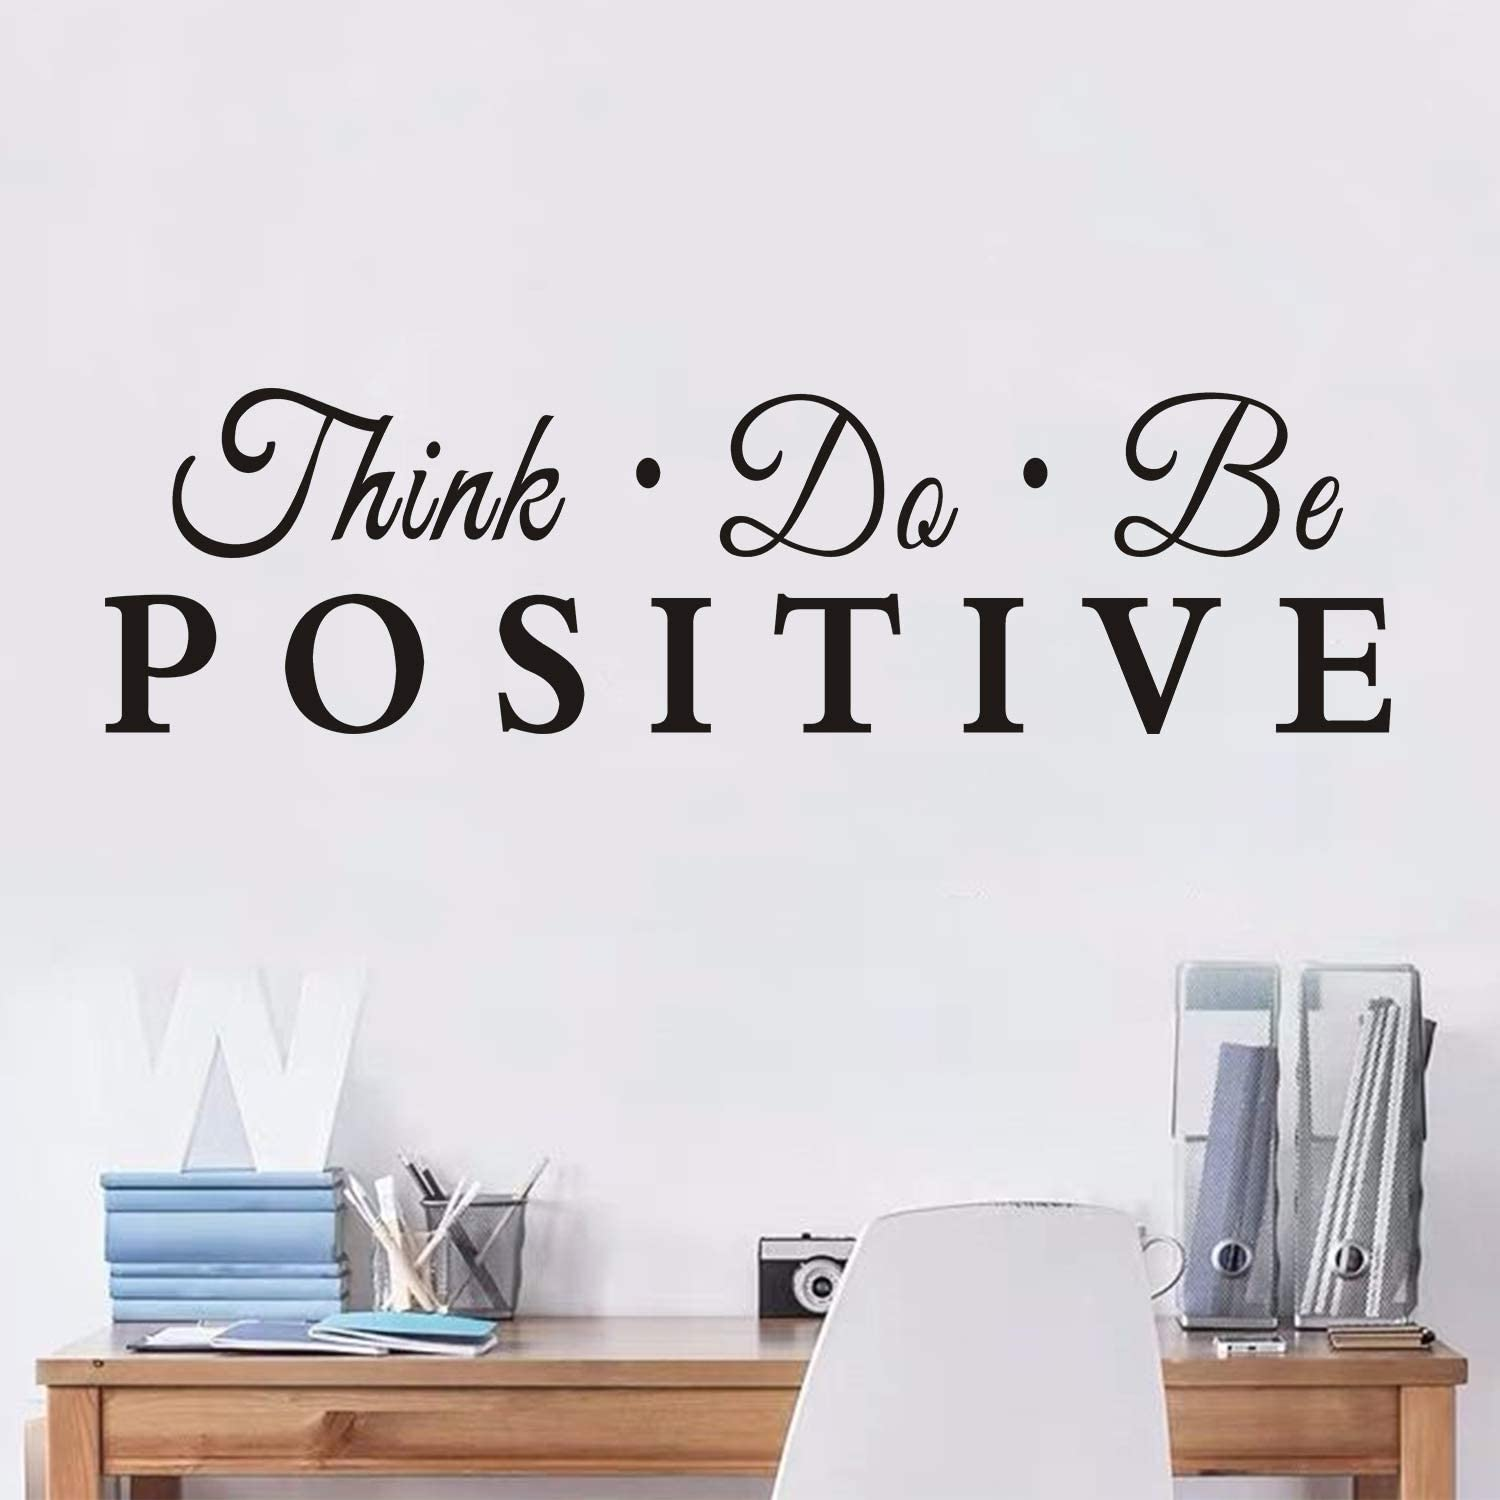 AnFigure Quote Wall Decals, Gym Wall Decals, Inspirational Office Classroom Bedroom Motivational Workout Exercise Sport Life Boy Girls Teen Vinyl Art Home Decor Stickers Think do be Positive 26